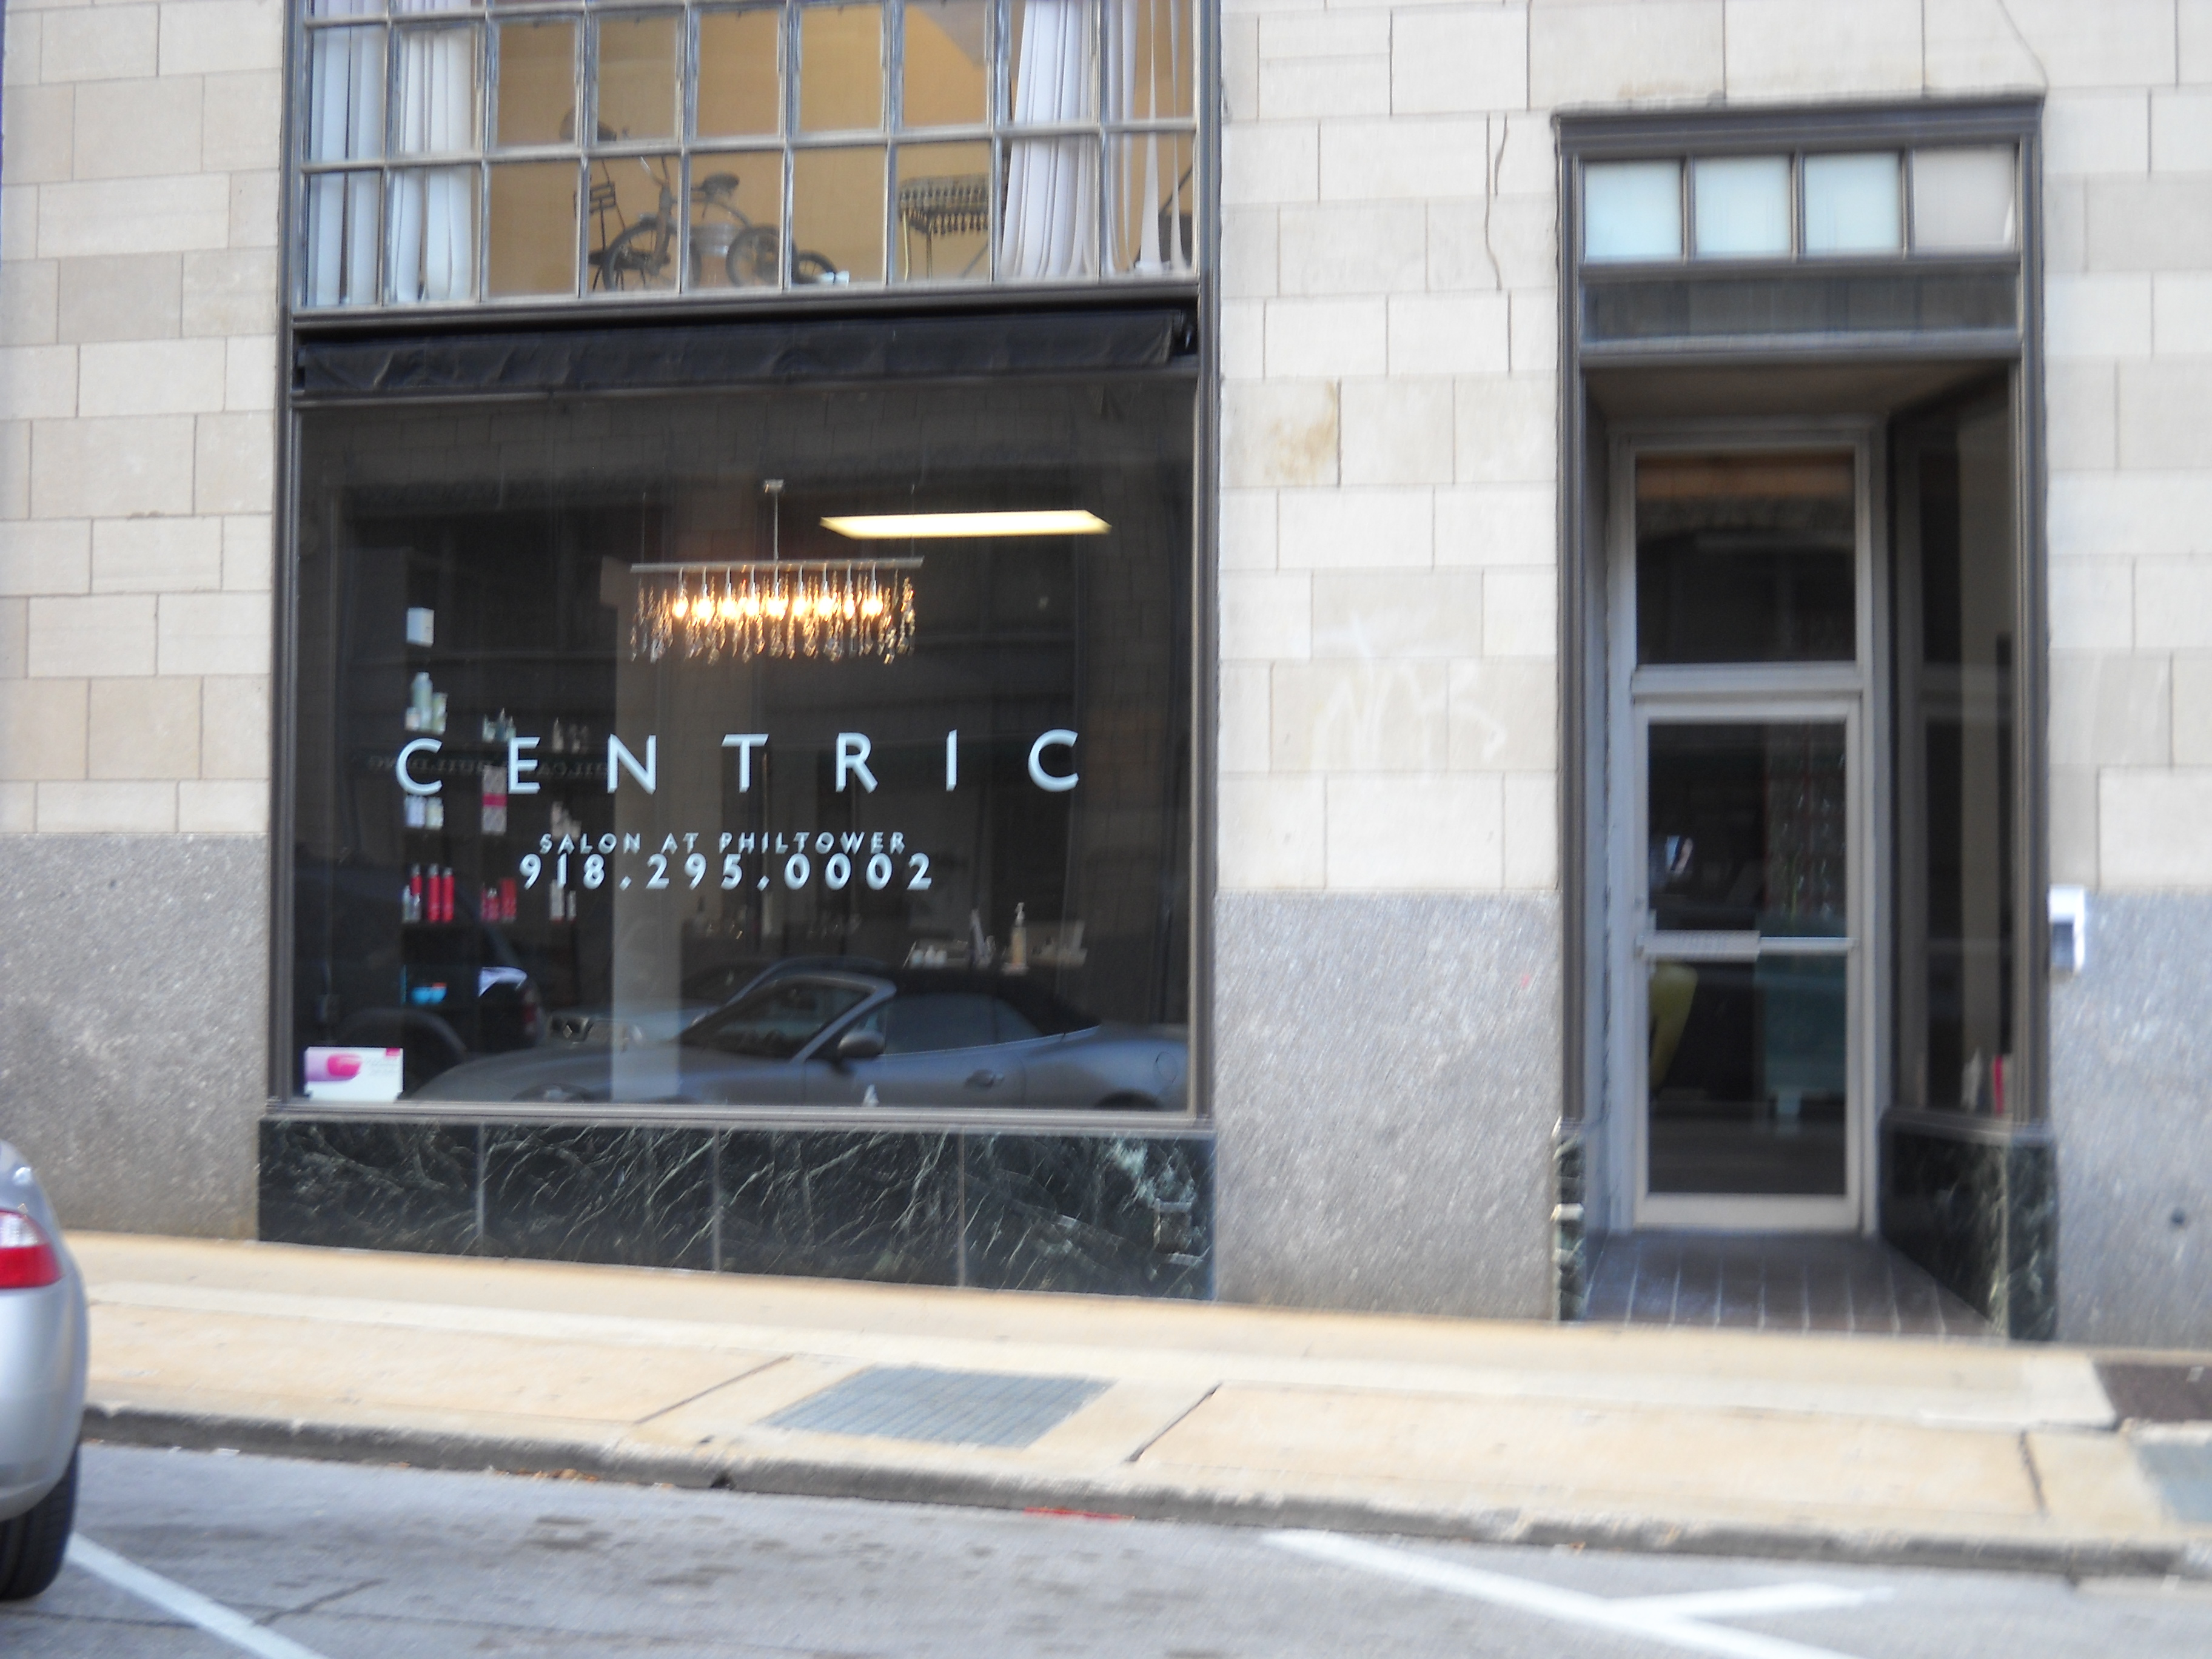 Locally-Owned Full-Service Salon, CENTRIC, the Salon at Philtower, Downtown Tulsa